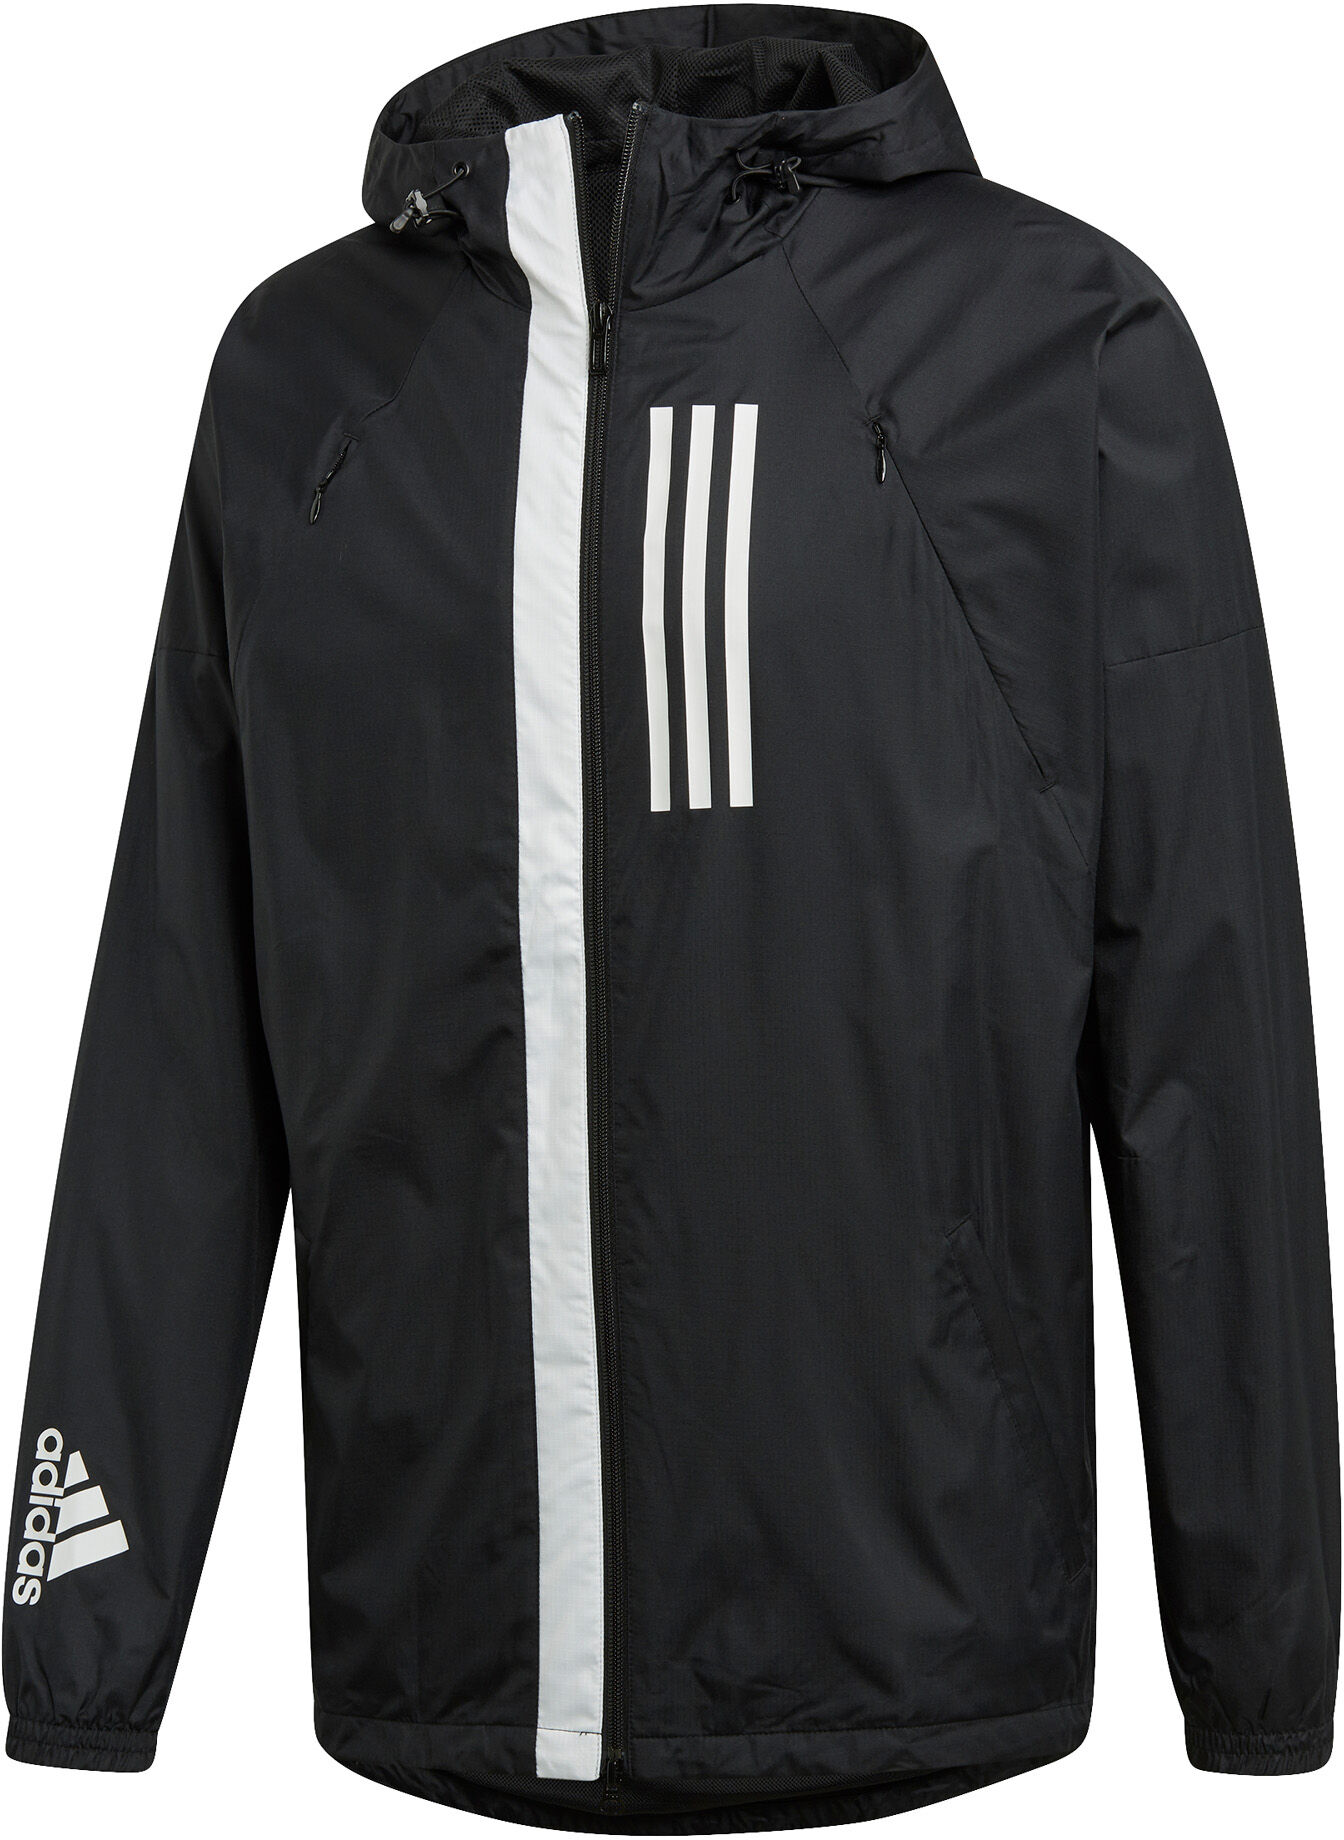 adidas | W.N.D. vindjakke herre | Jakker | | INTERSPORT.NO